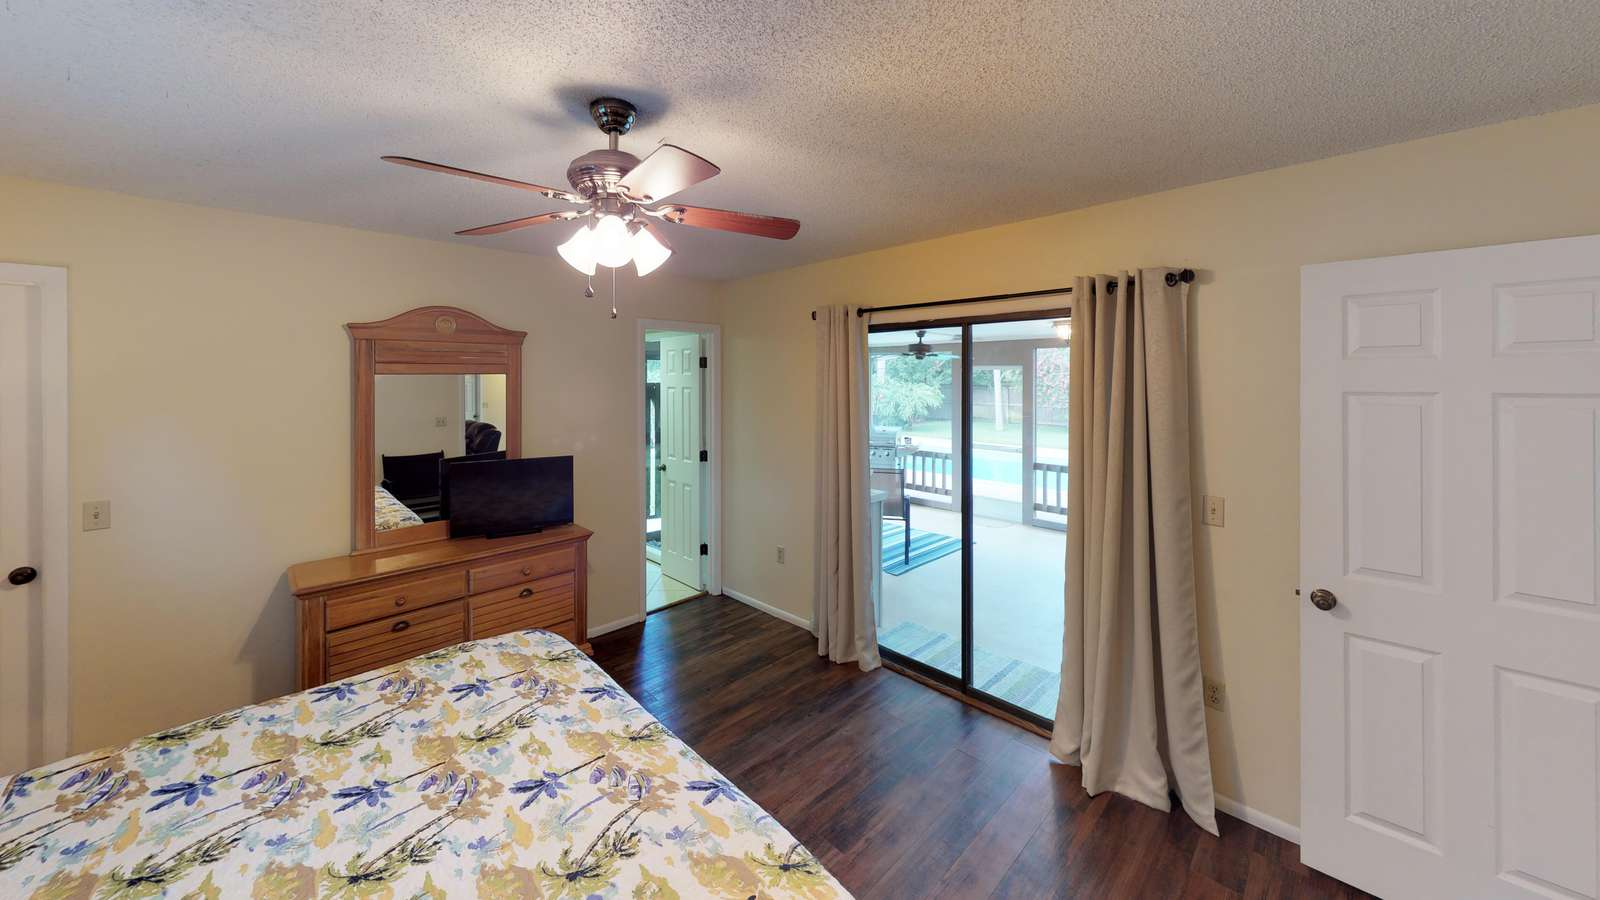 Primary Bedroom with king bed, private bathroom and view to lanai/pool